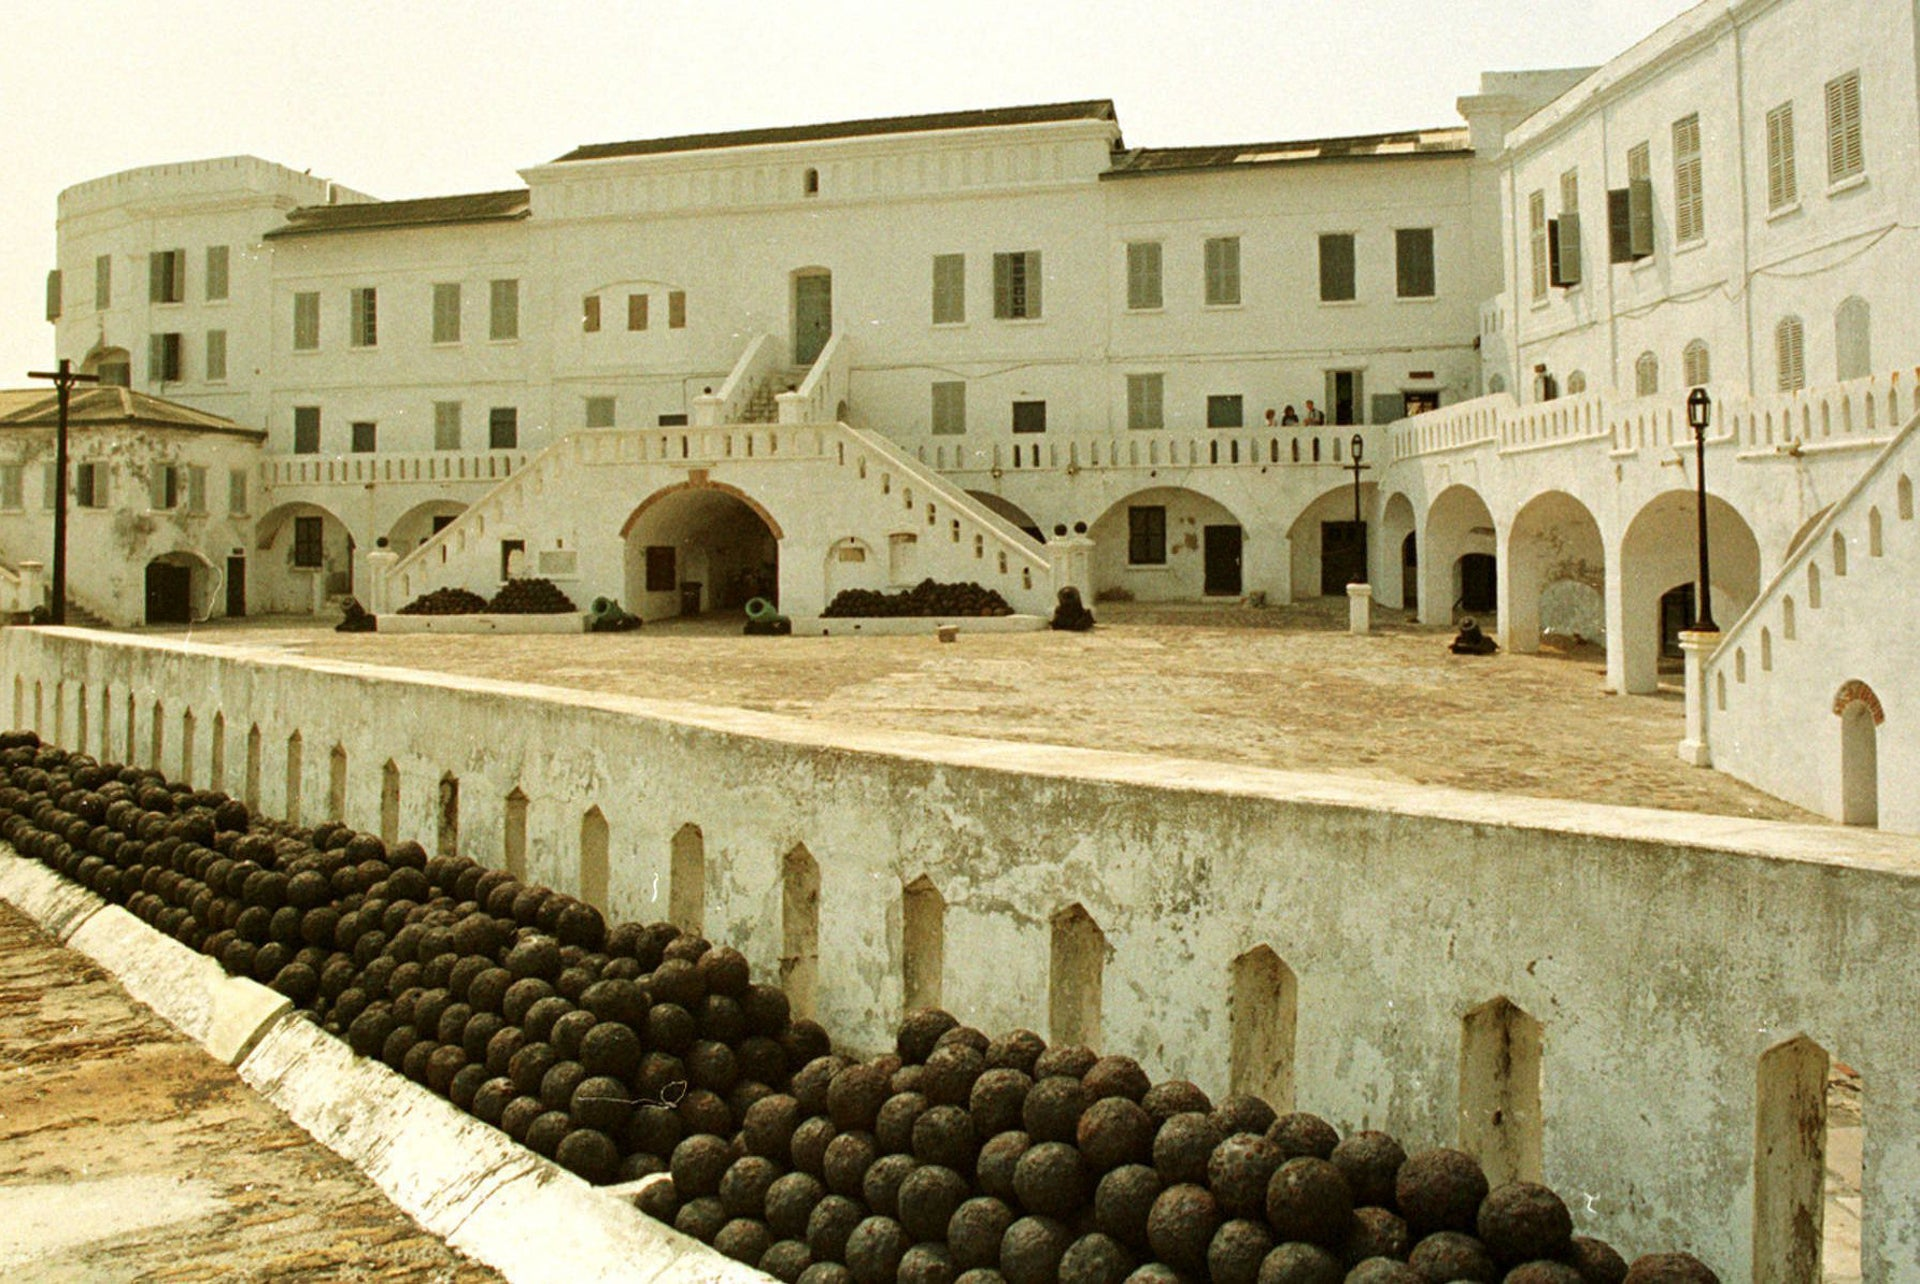 A slave fortress in Cape Coast, Ghana is shown in this Dec. 6, 1996 file photo.